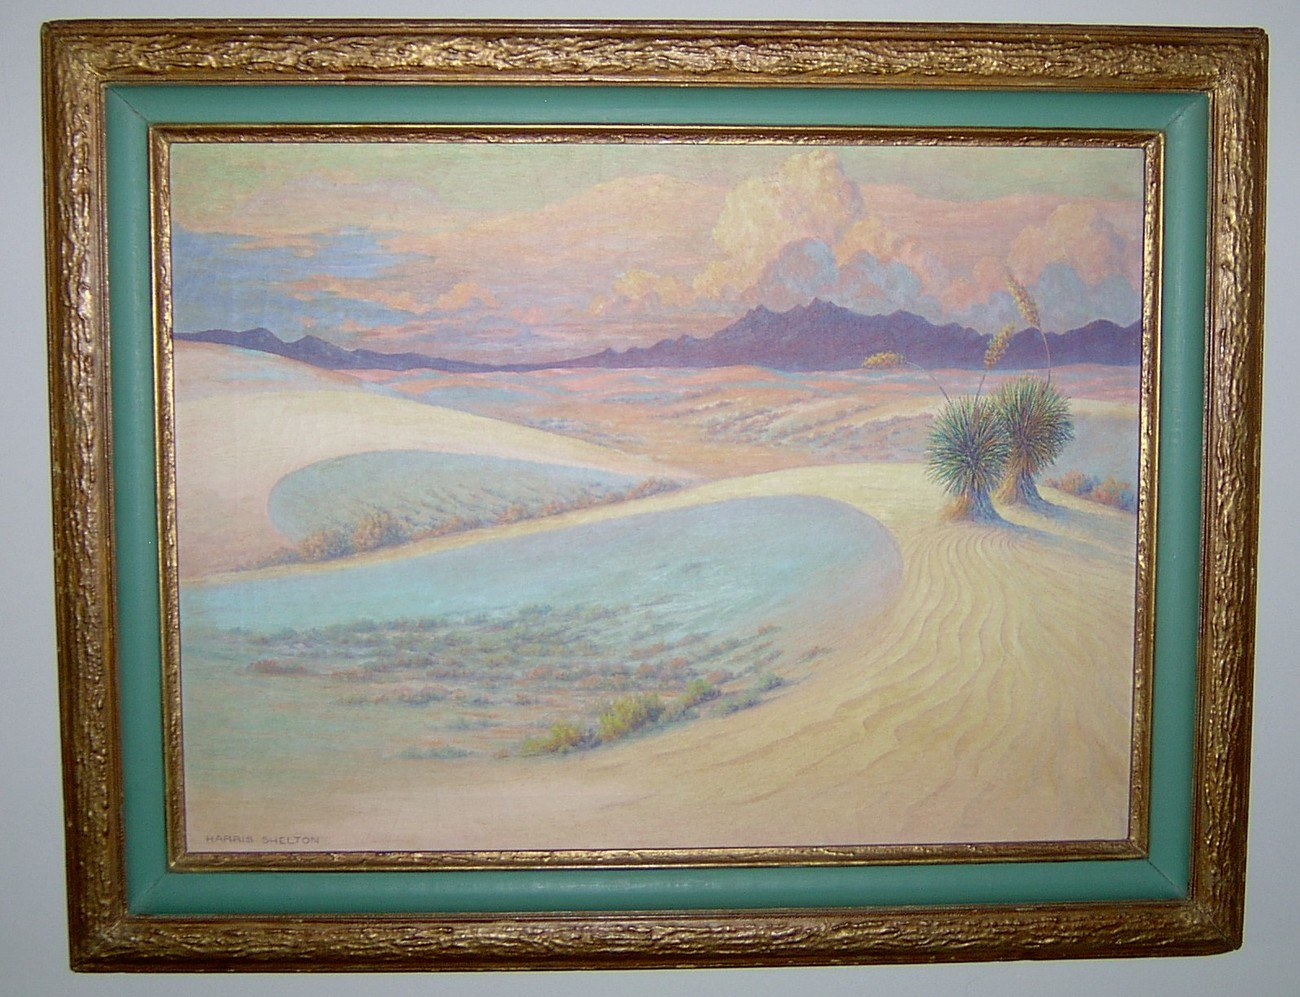 Harris Shelton, 1896-1976, Signed Oil Painting